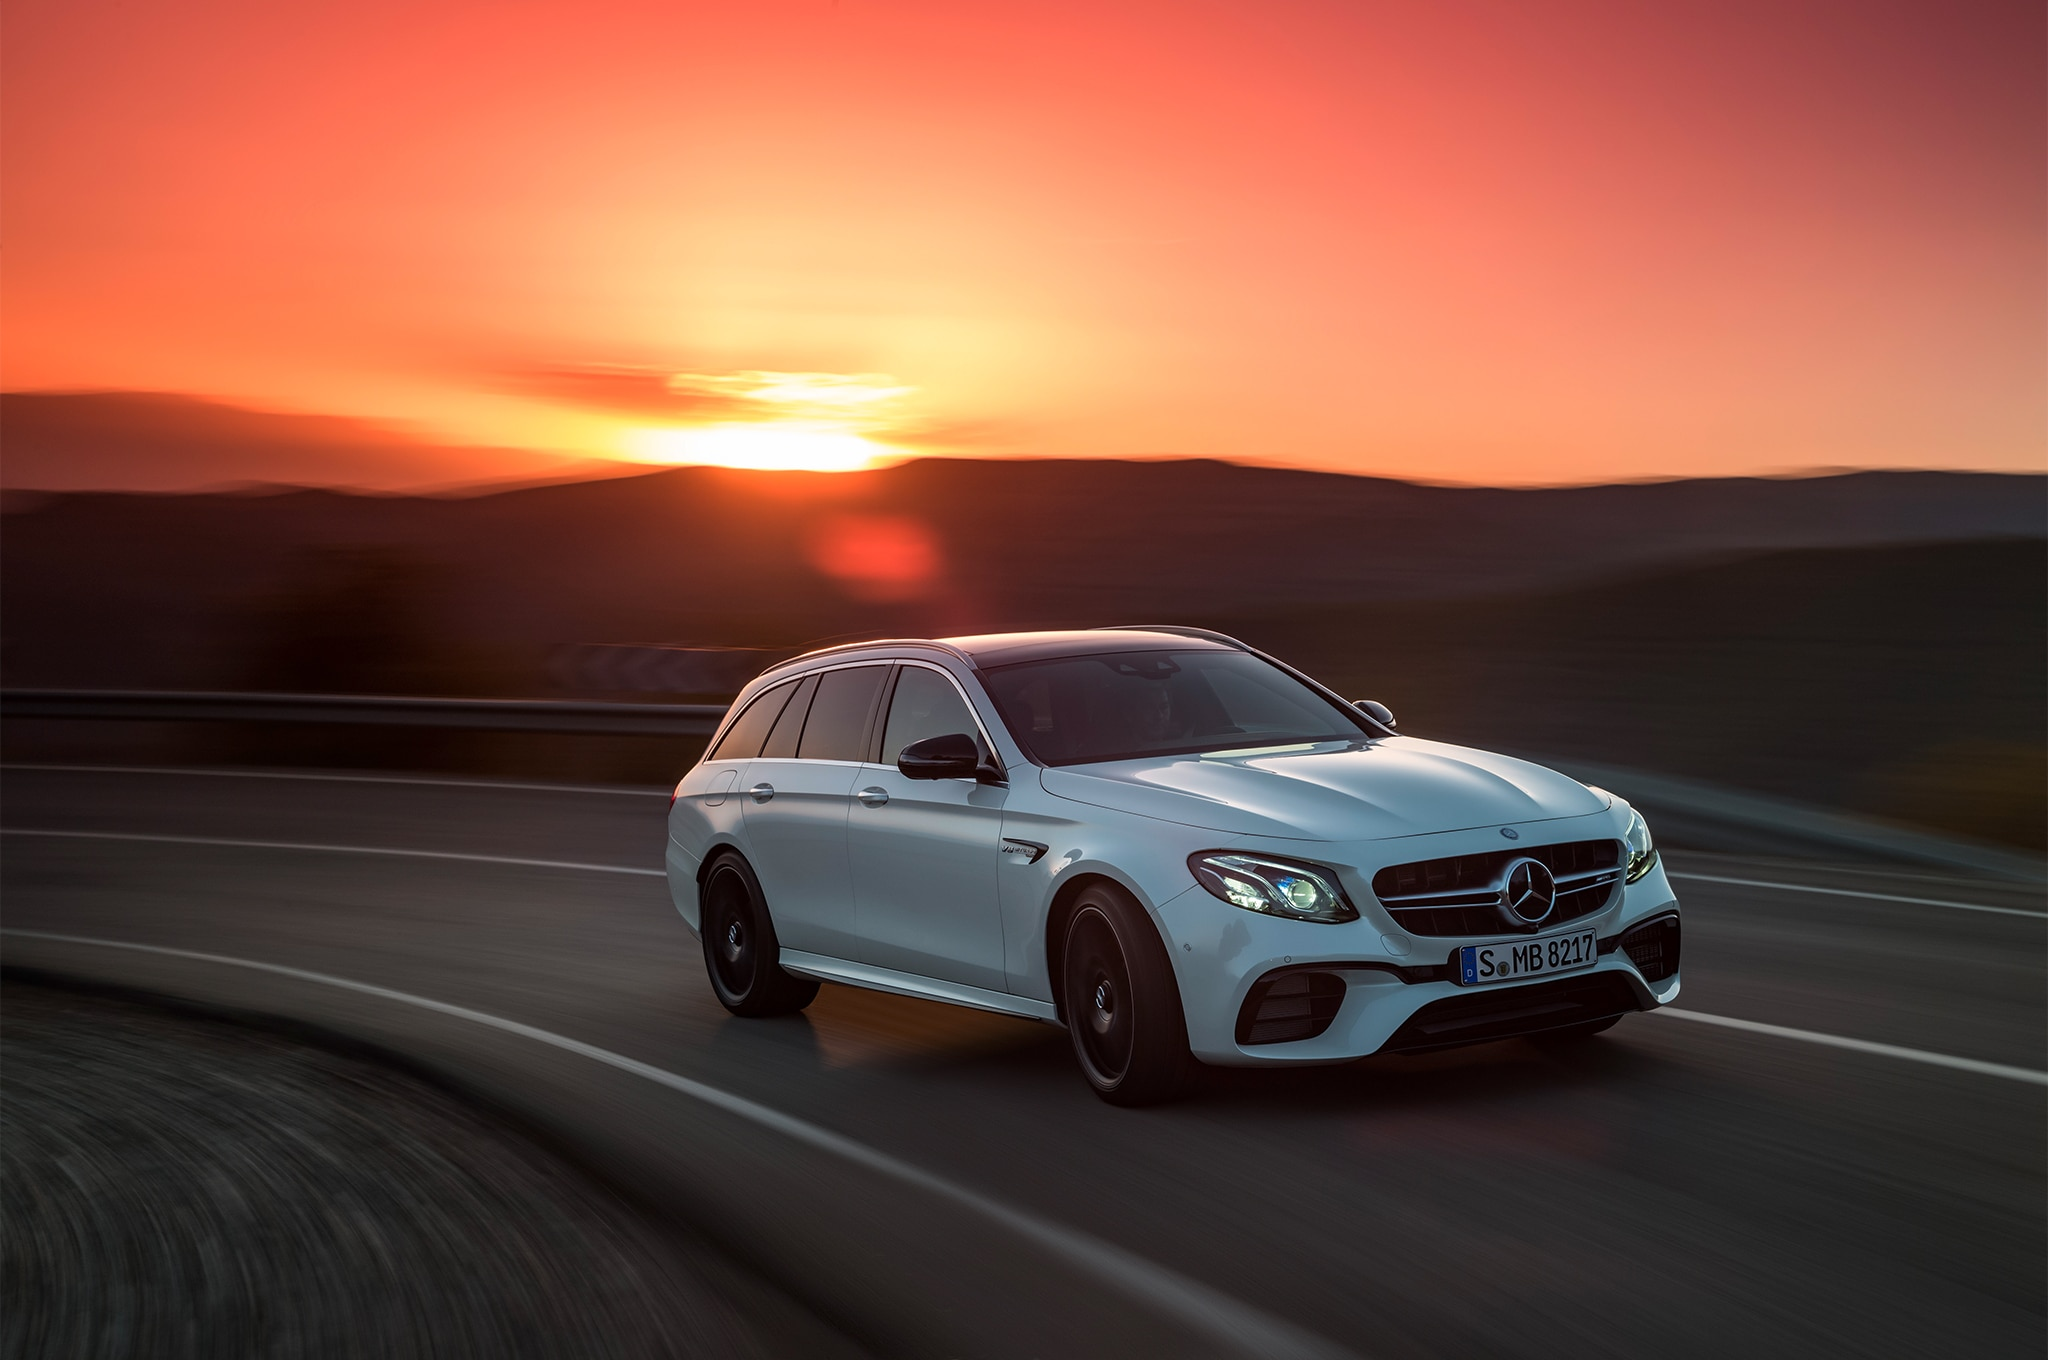 2018 mercedes amg e63 s wagon geneva bound automobile magazine. Black Bedroom Furniture Sets. Home Design Ideas